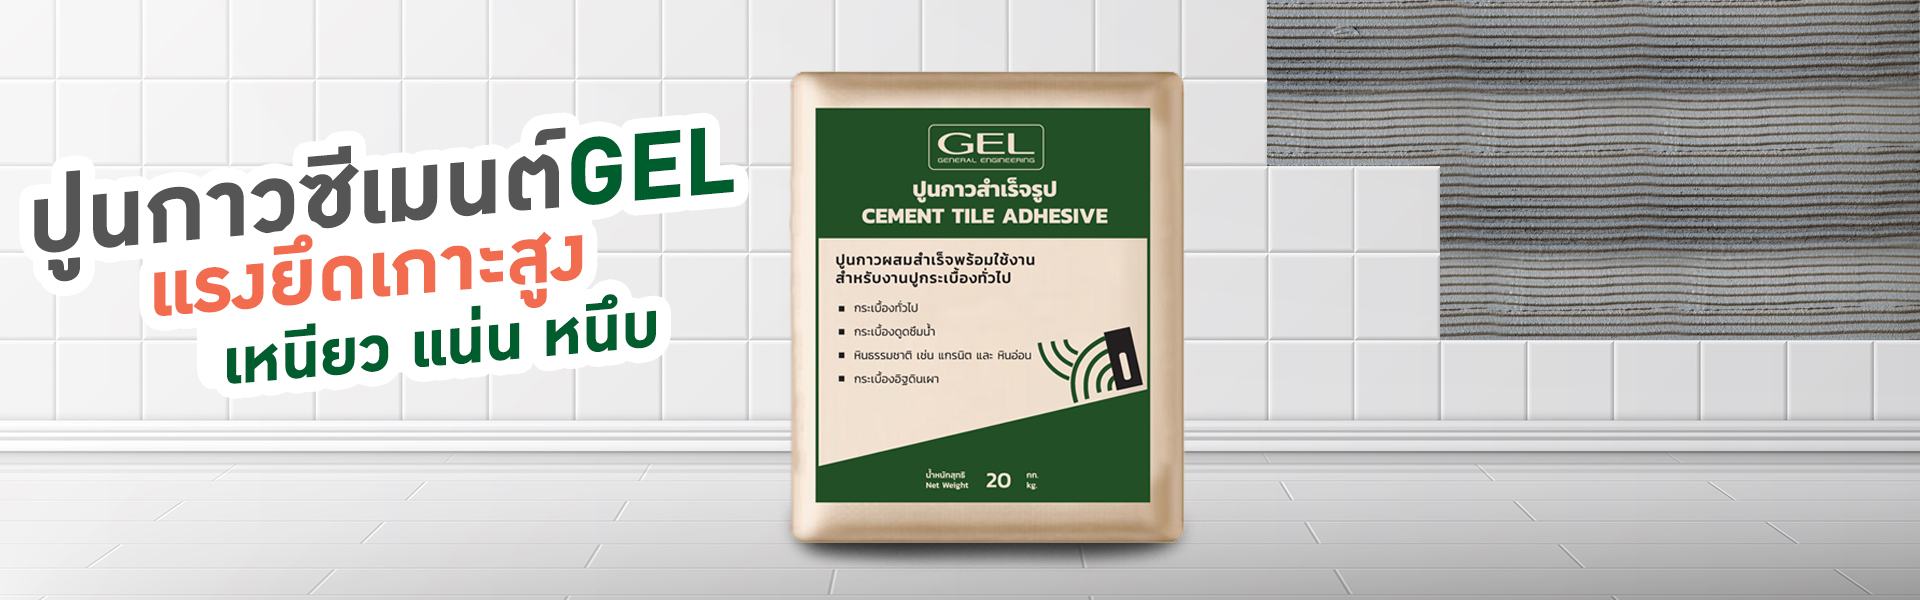 GEL Adhesive Tile Cement